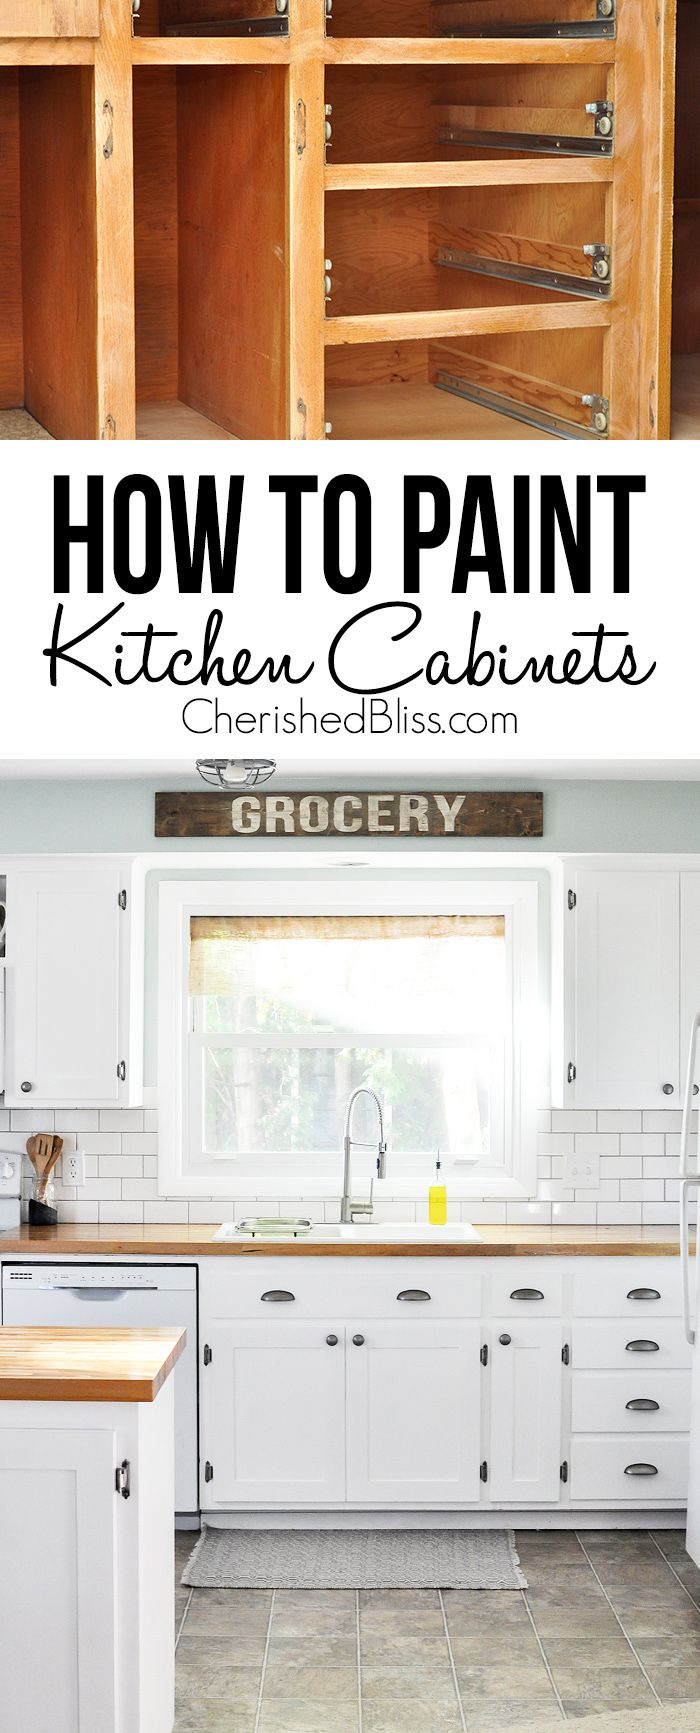 Tips on How to Paint Kitchen Cabinets | Budgeting, Tutorials and ...